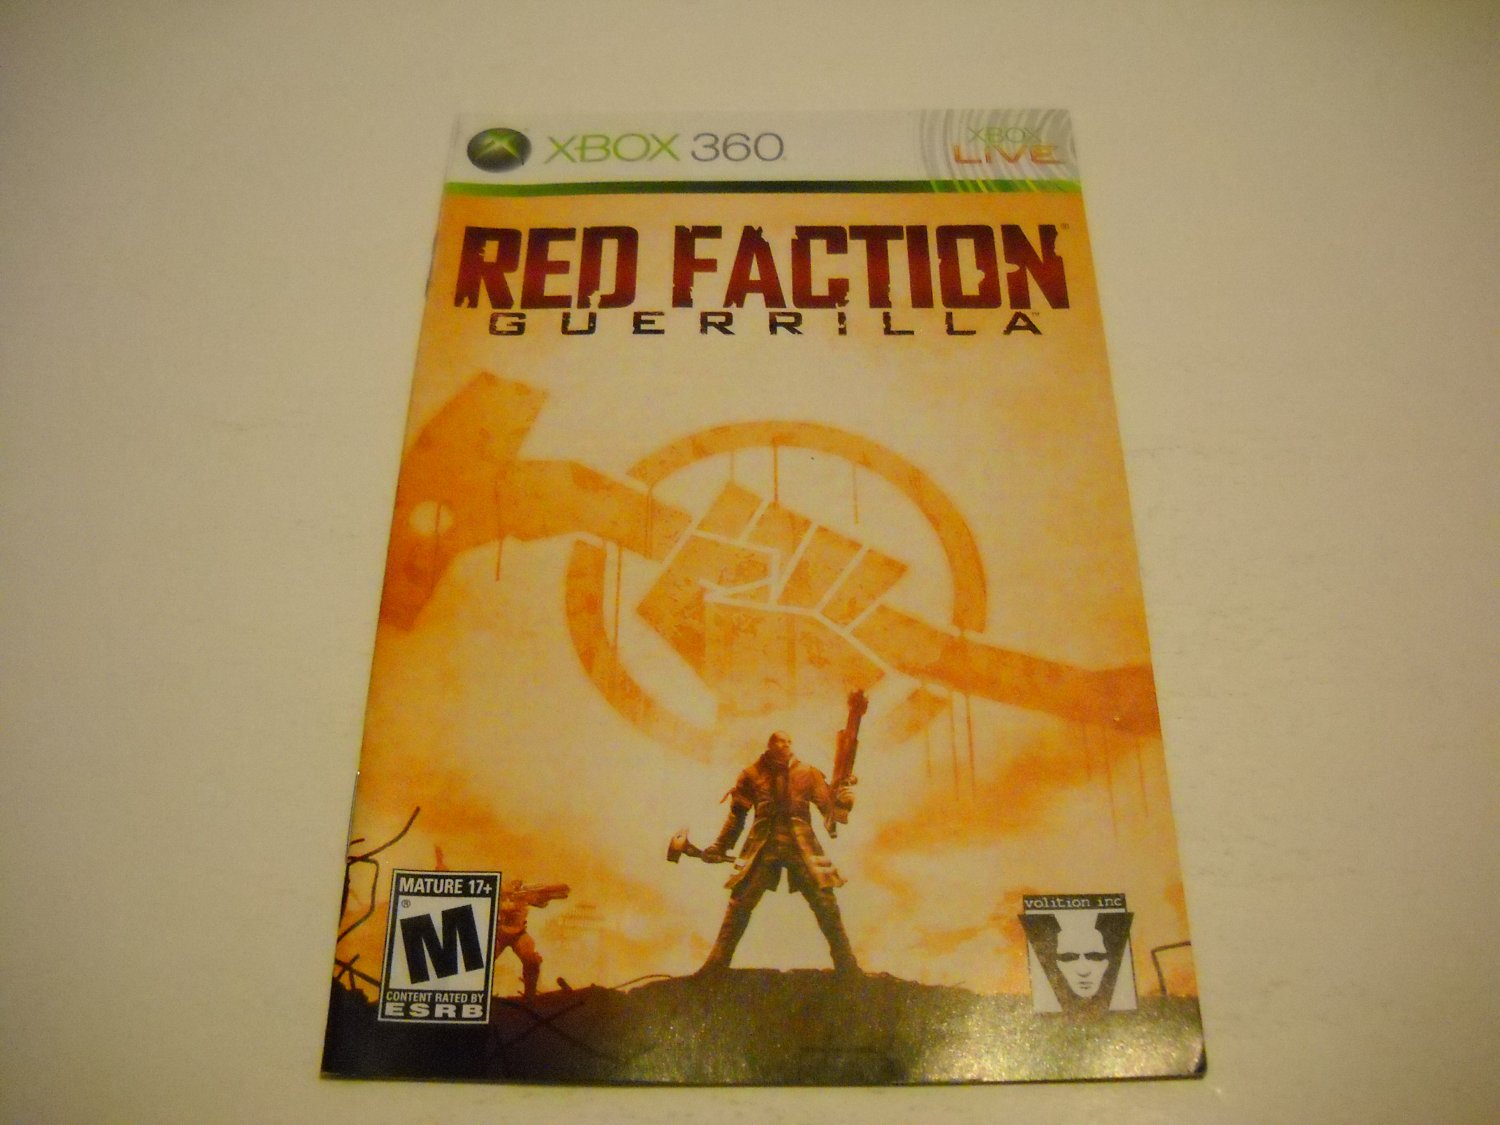 Manual ONLY ~  for Red Faction Guerrilla   - Xbox 360 Instruction Booklet